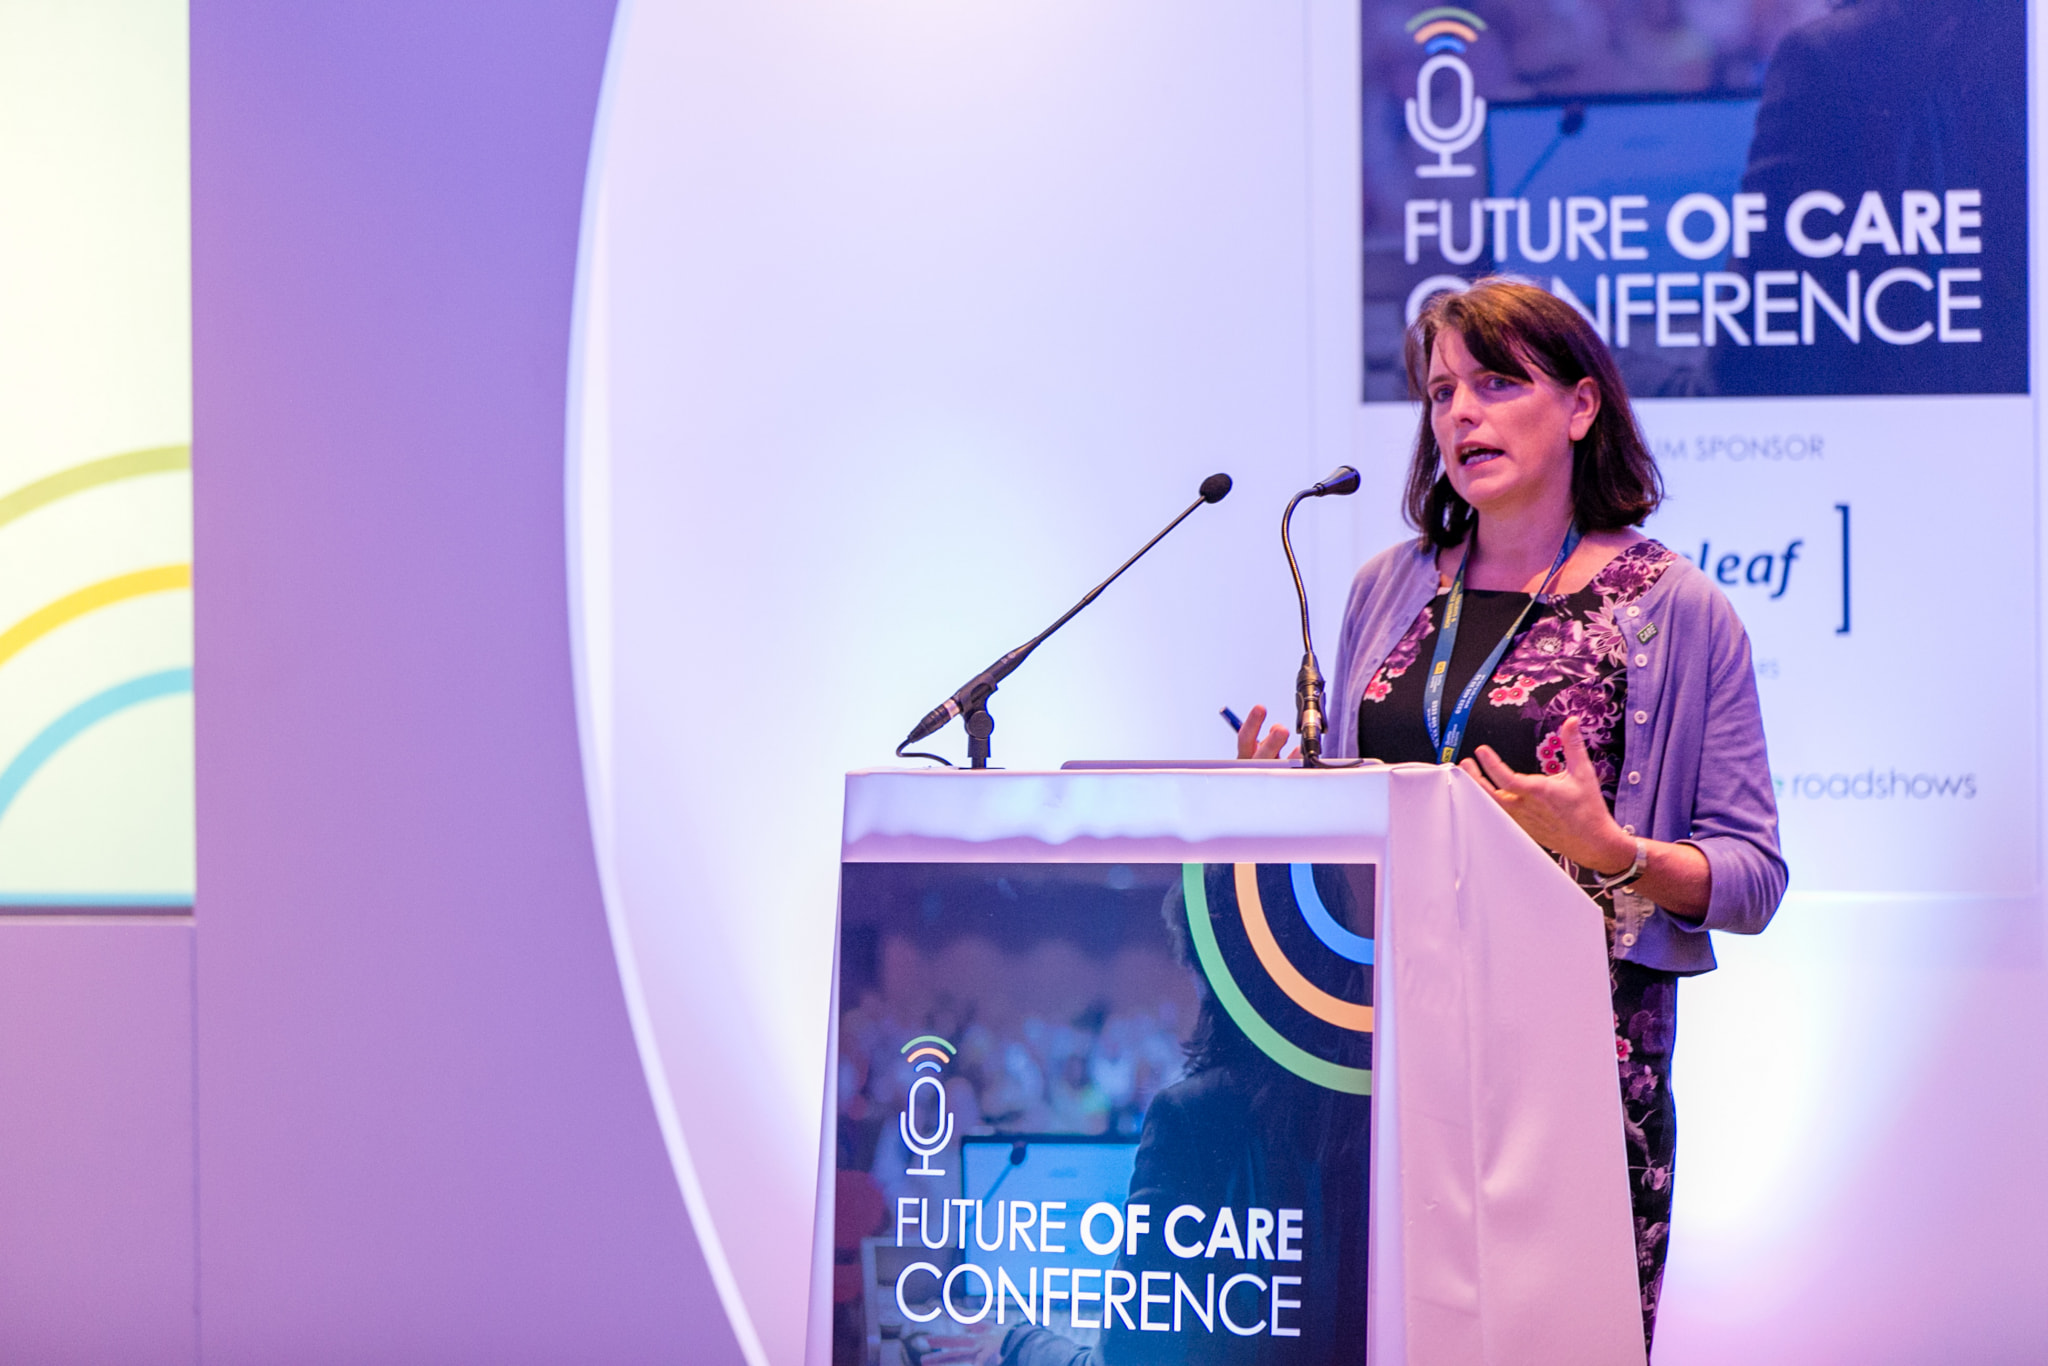 Future of Care Conference